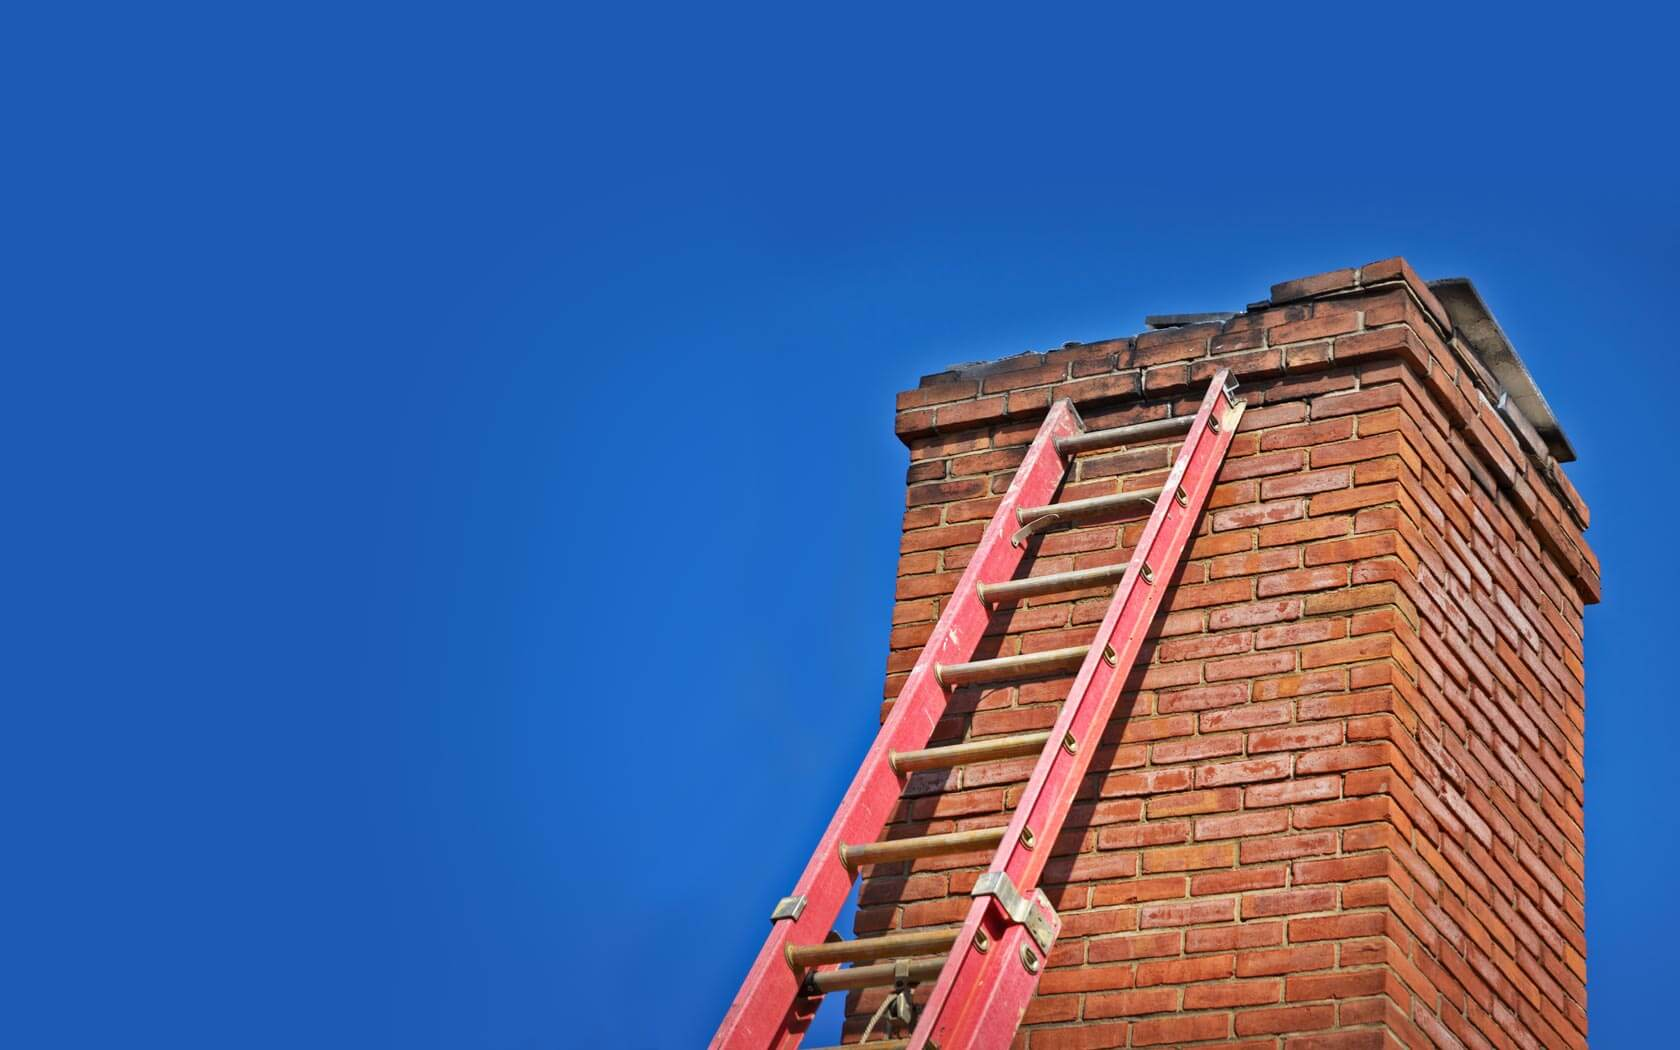 Jenison Chimney Cleaning